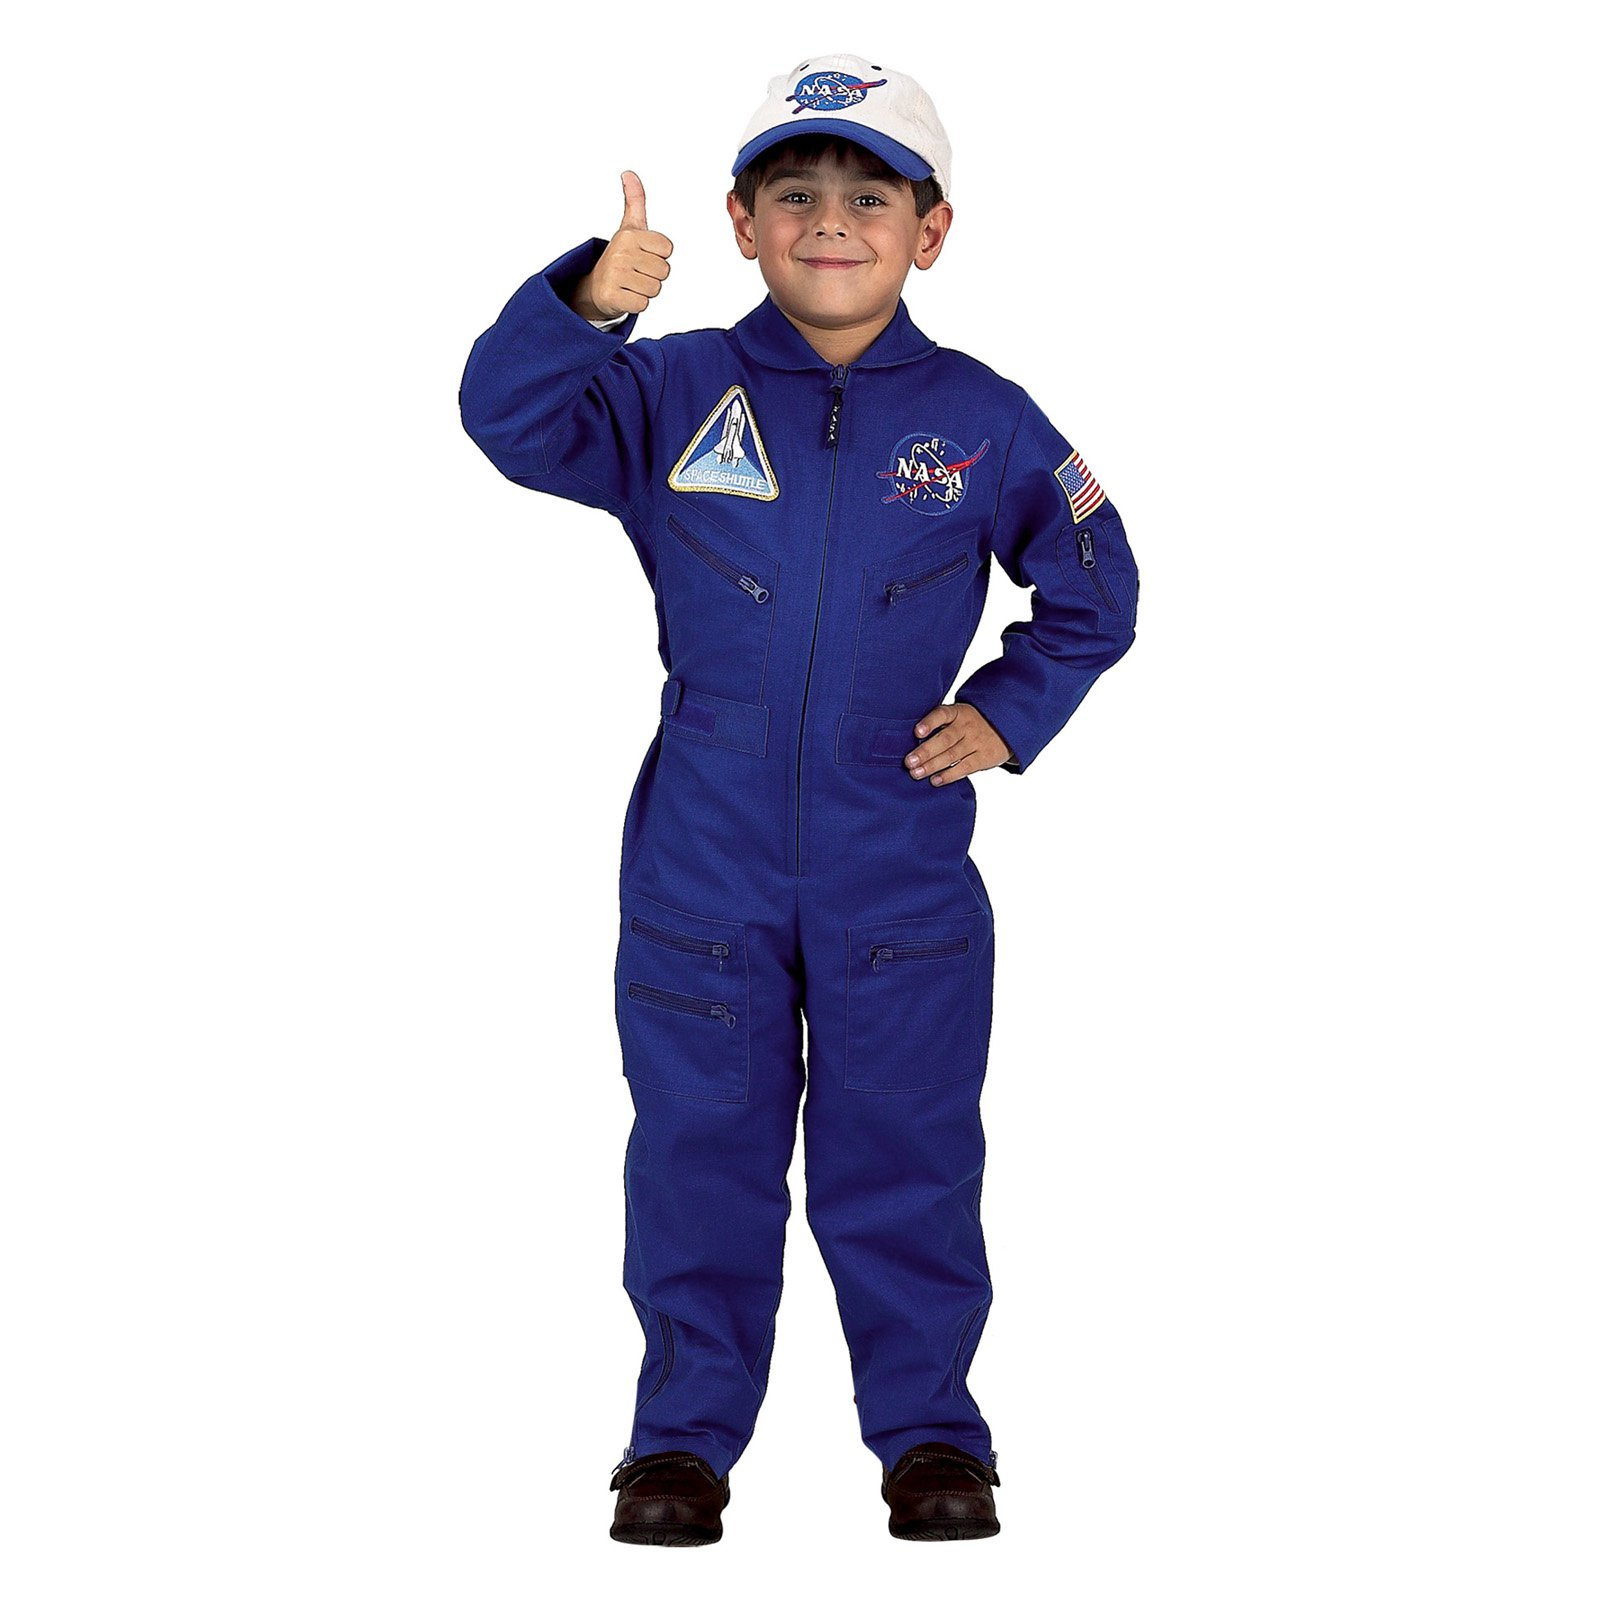 Image of Aeromax Flight Suit with Embroidered Cap